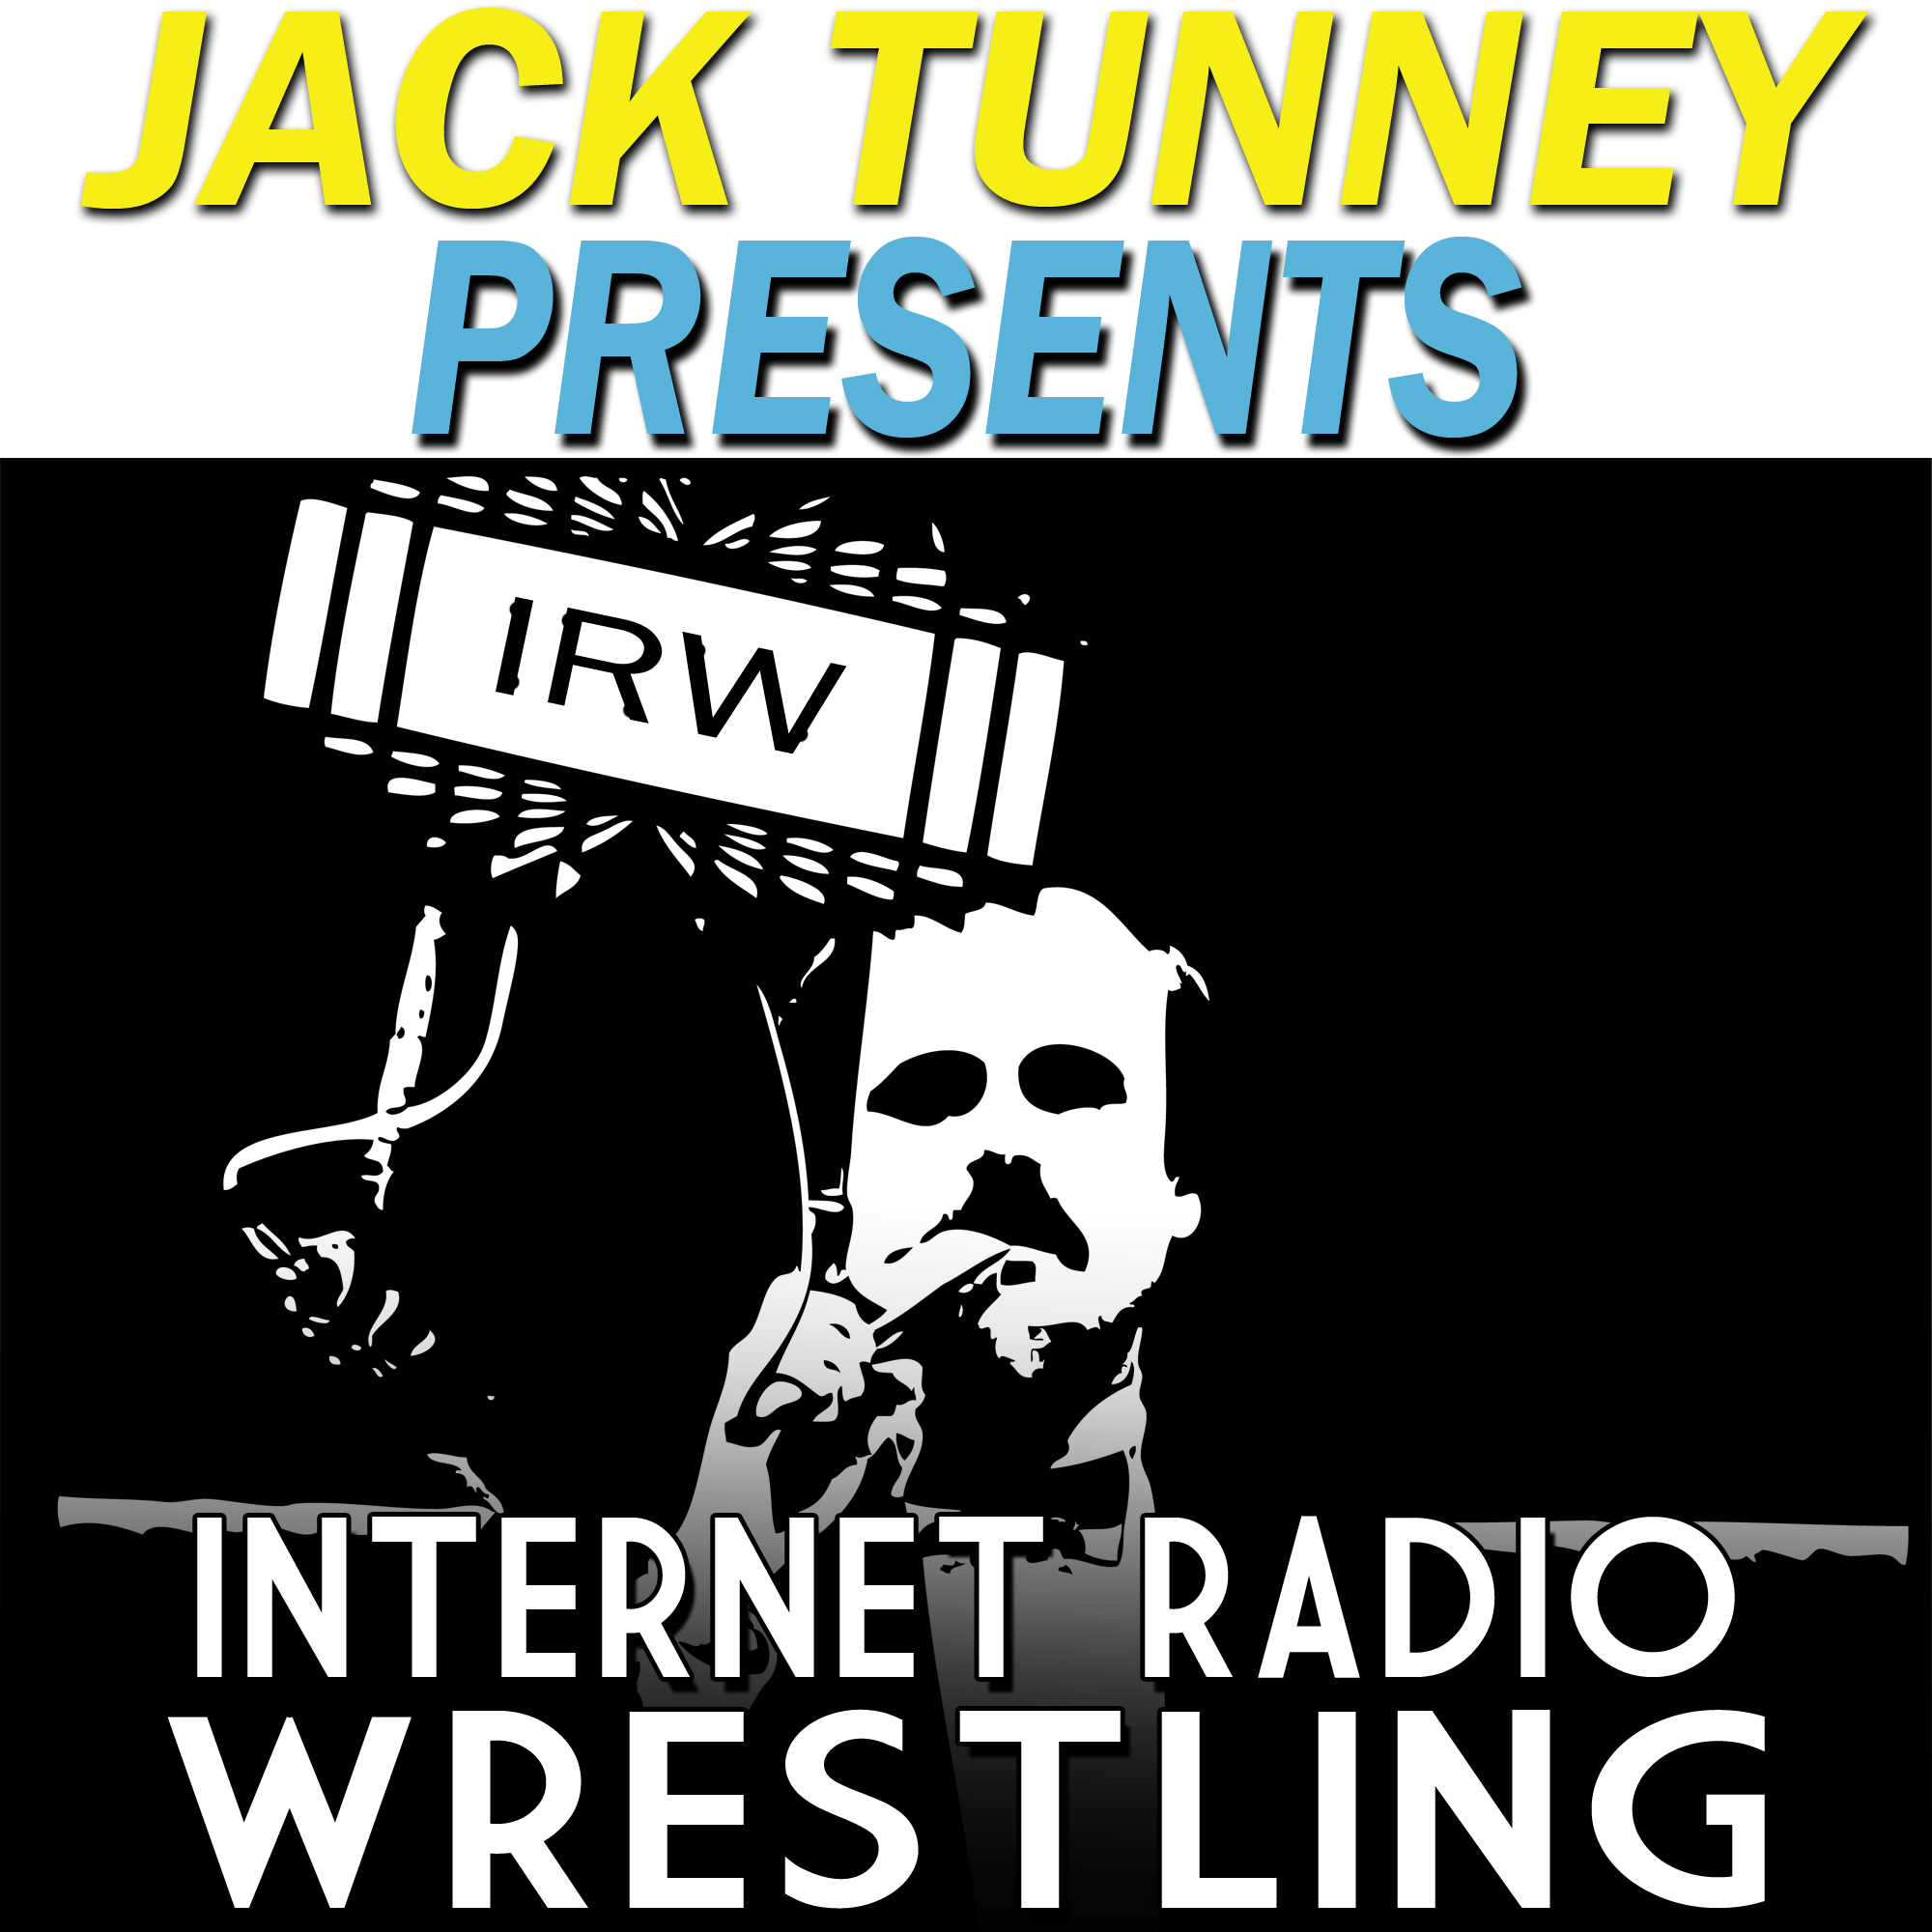 Internet Radio Wrestling